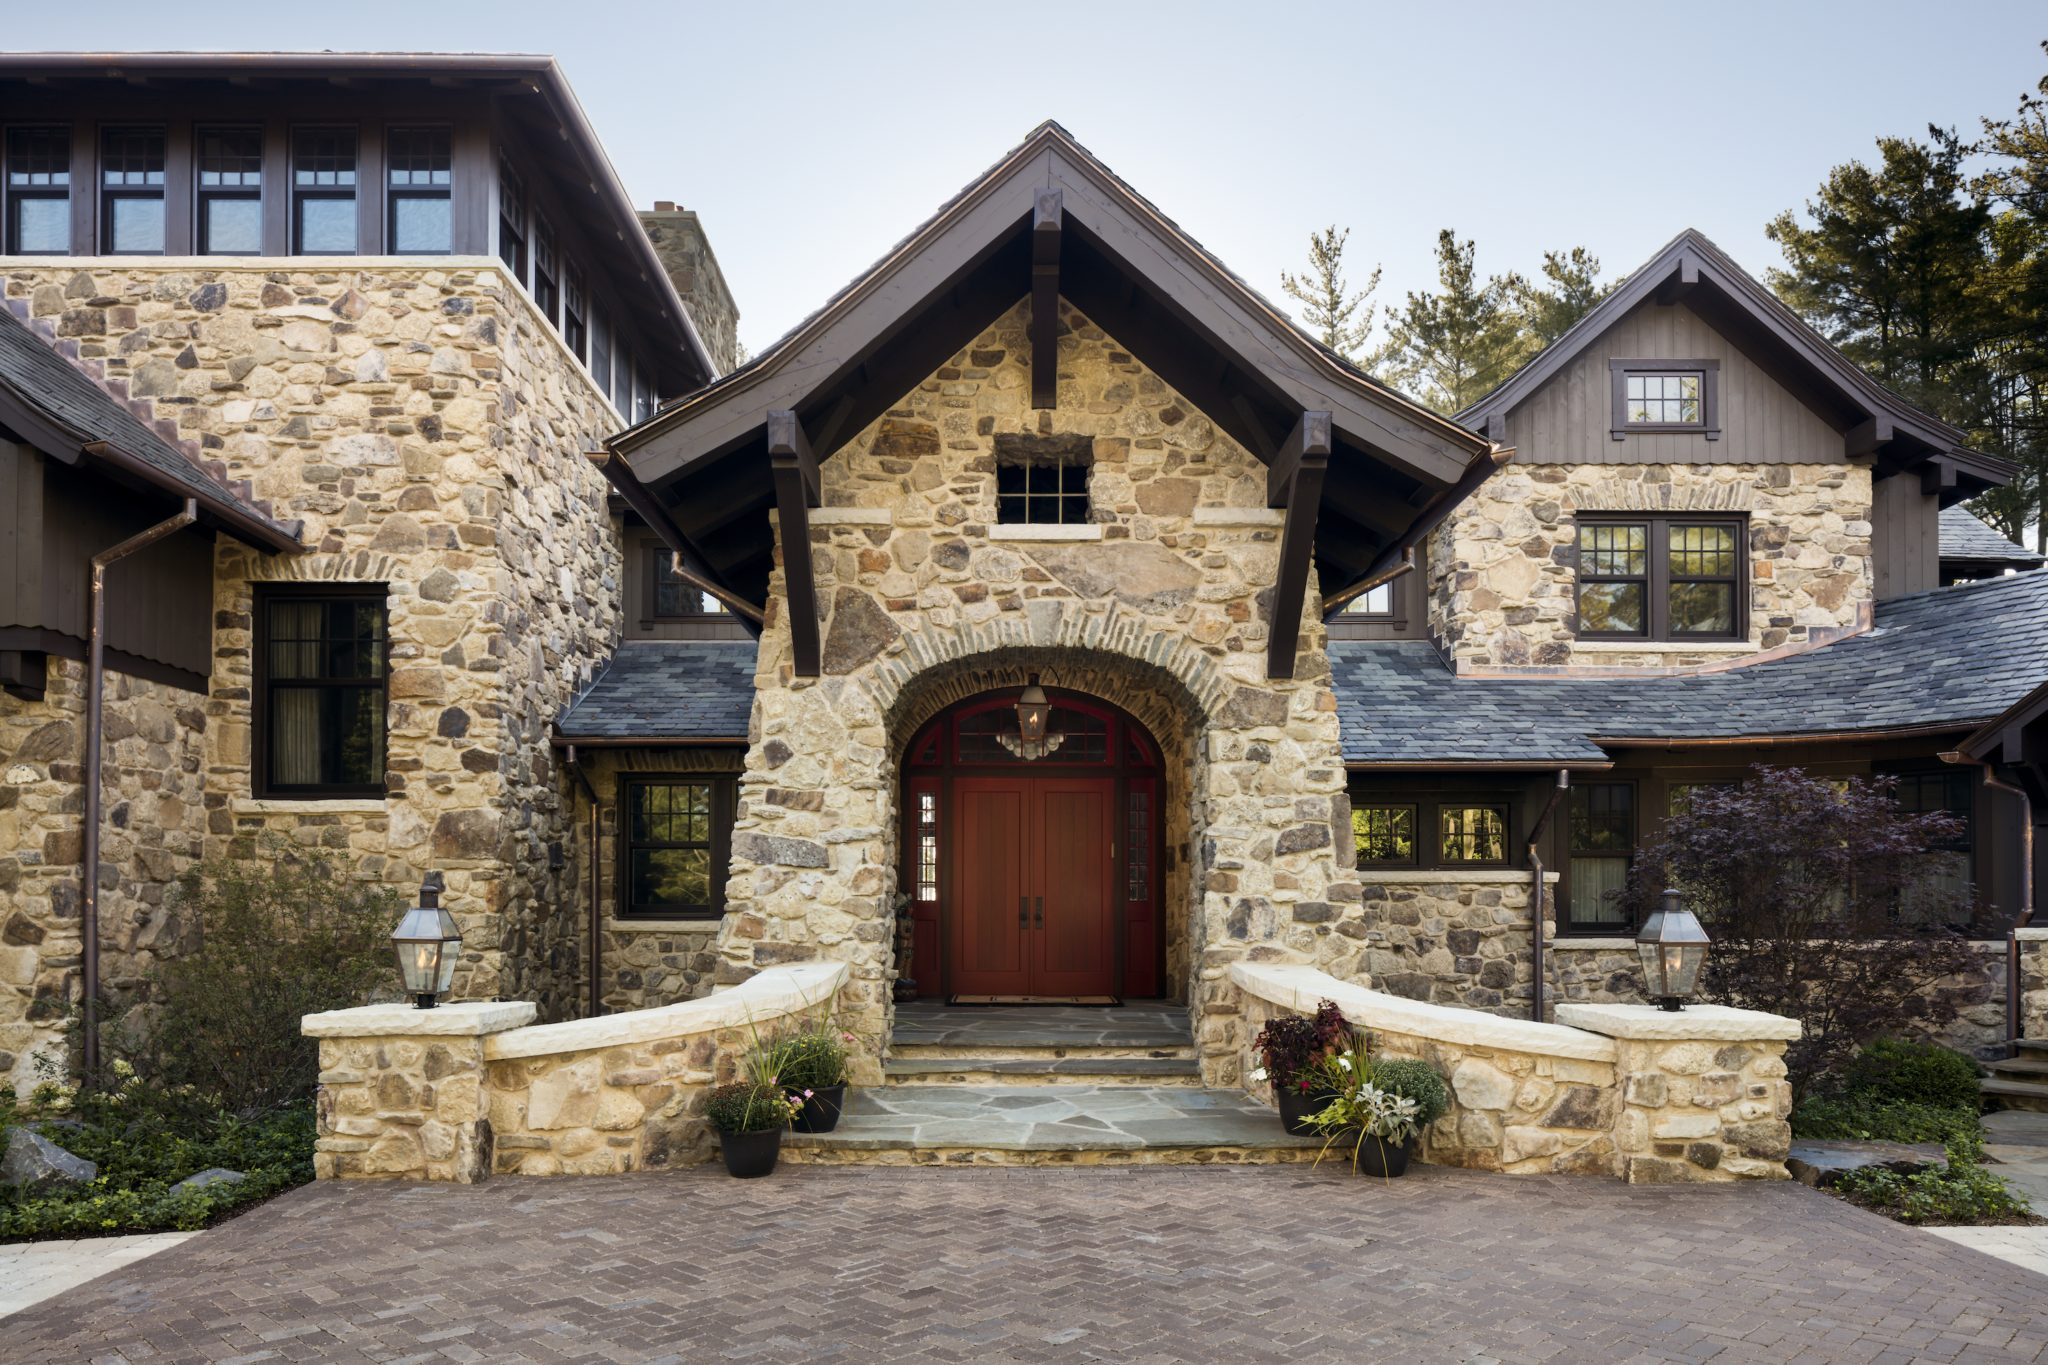 Bright red doors add a pop of color to the neutral stone exterior. By Wade Weissmann Architecture Inc.